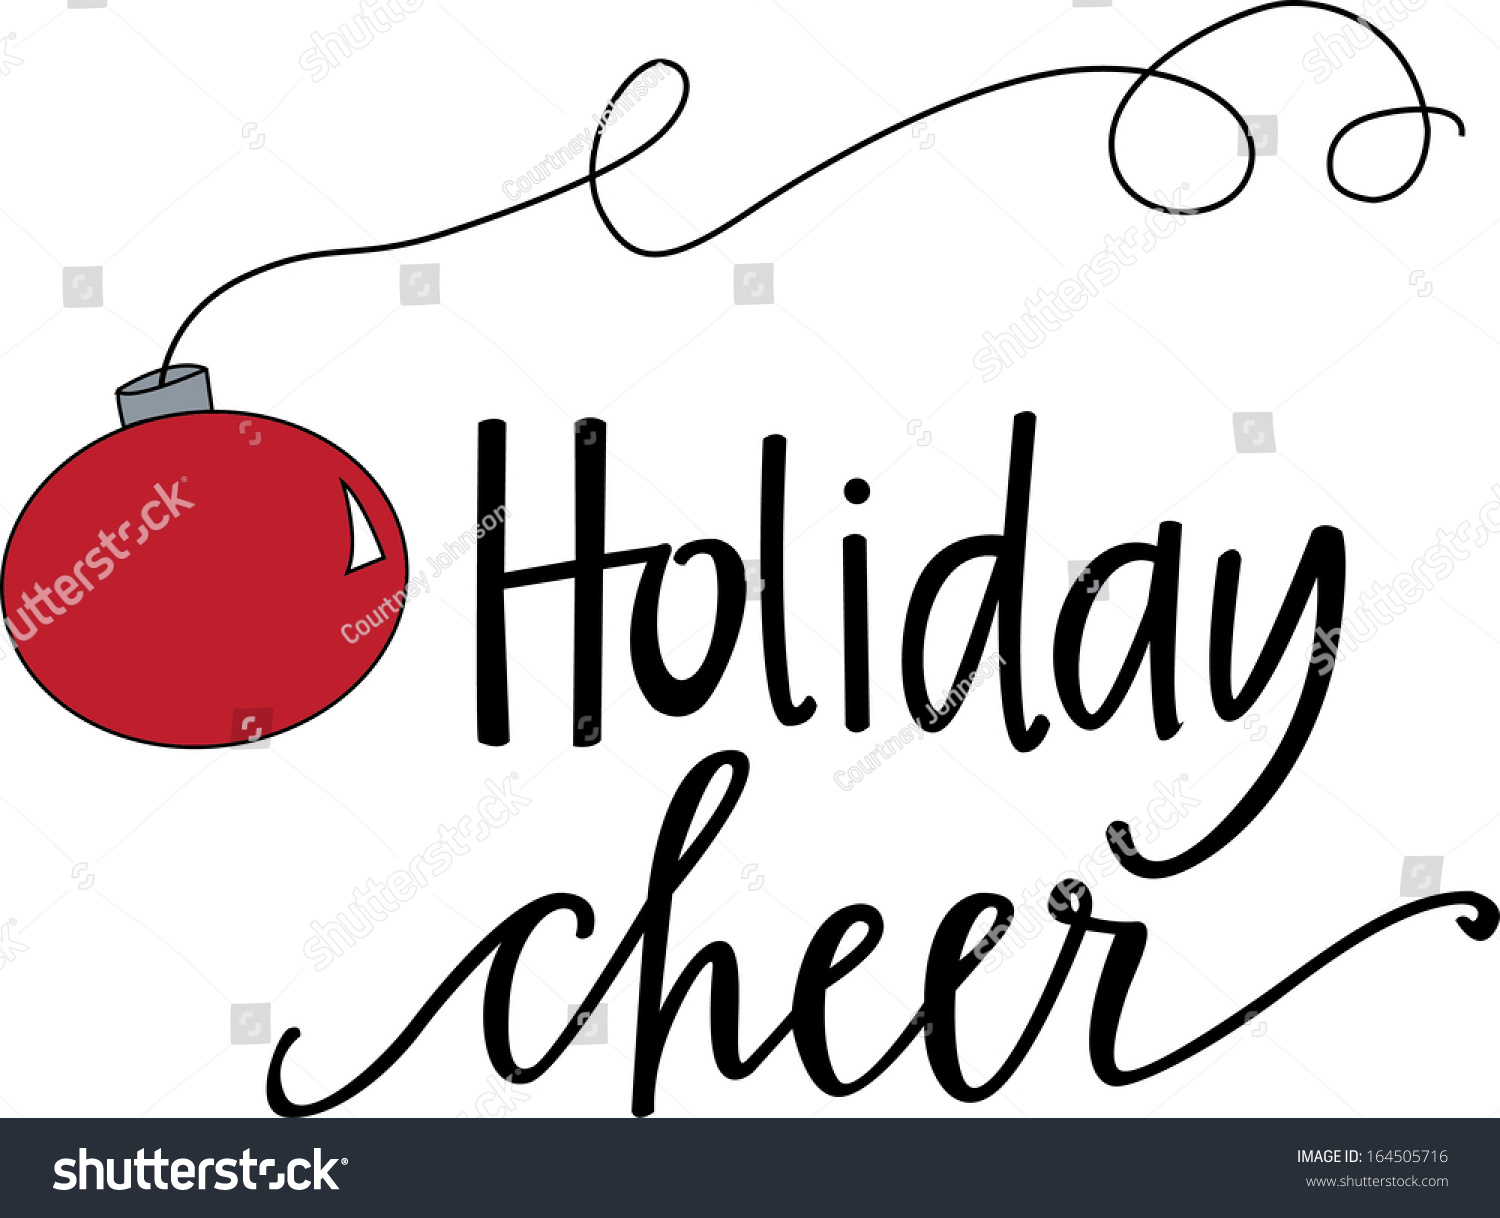 Holiday Cheer Stock Vector (Royalty Free) 164505716.